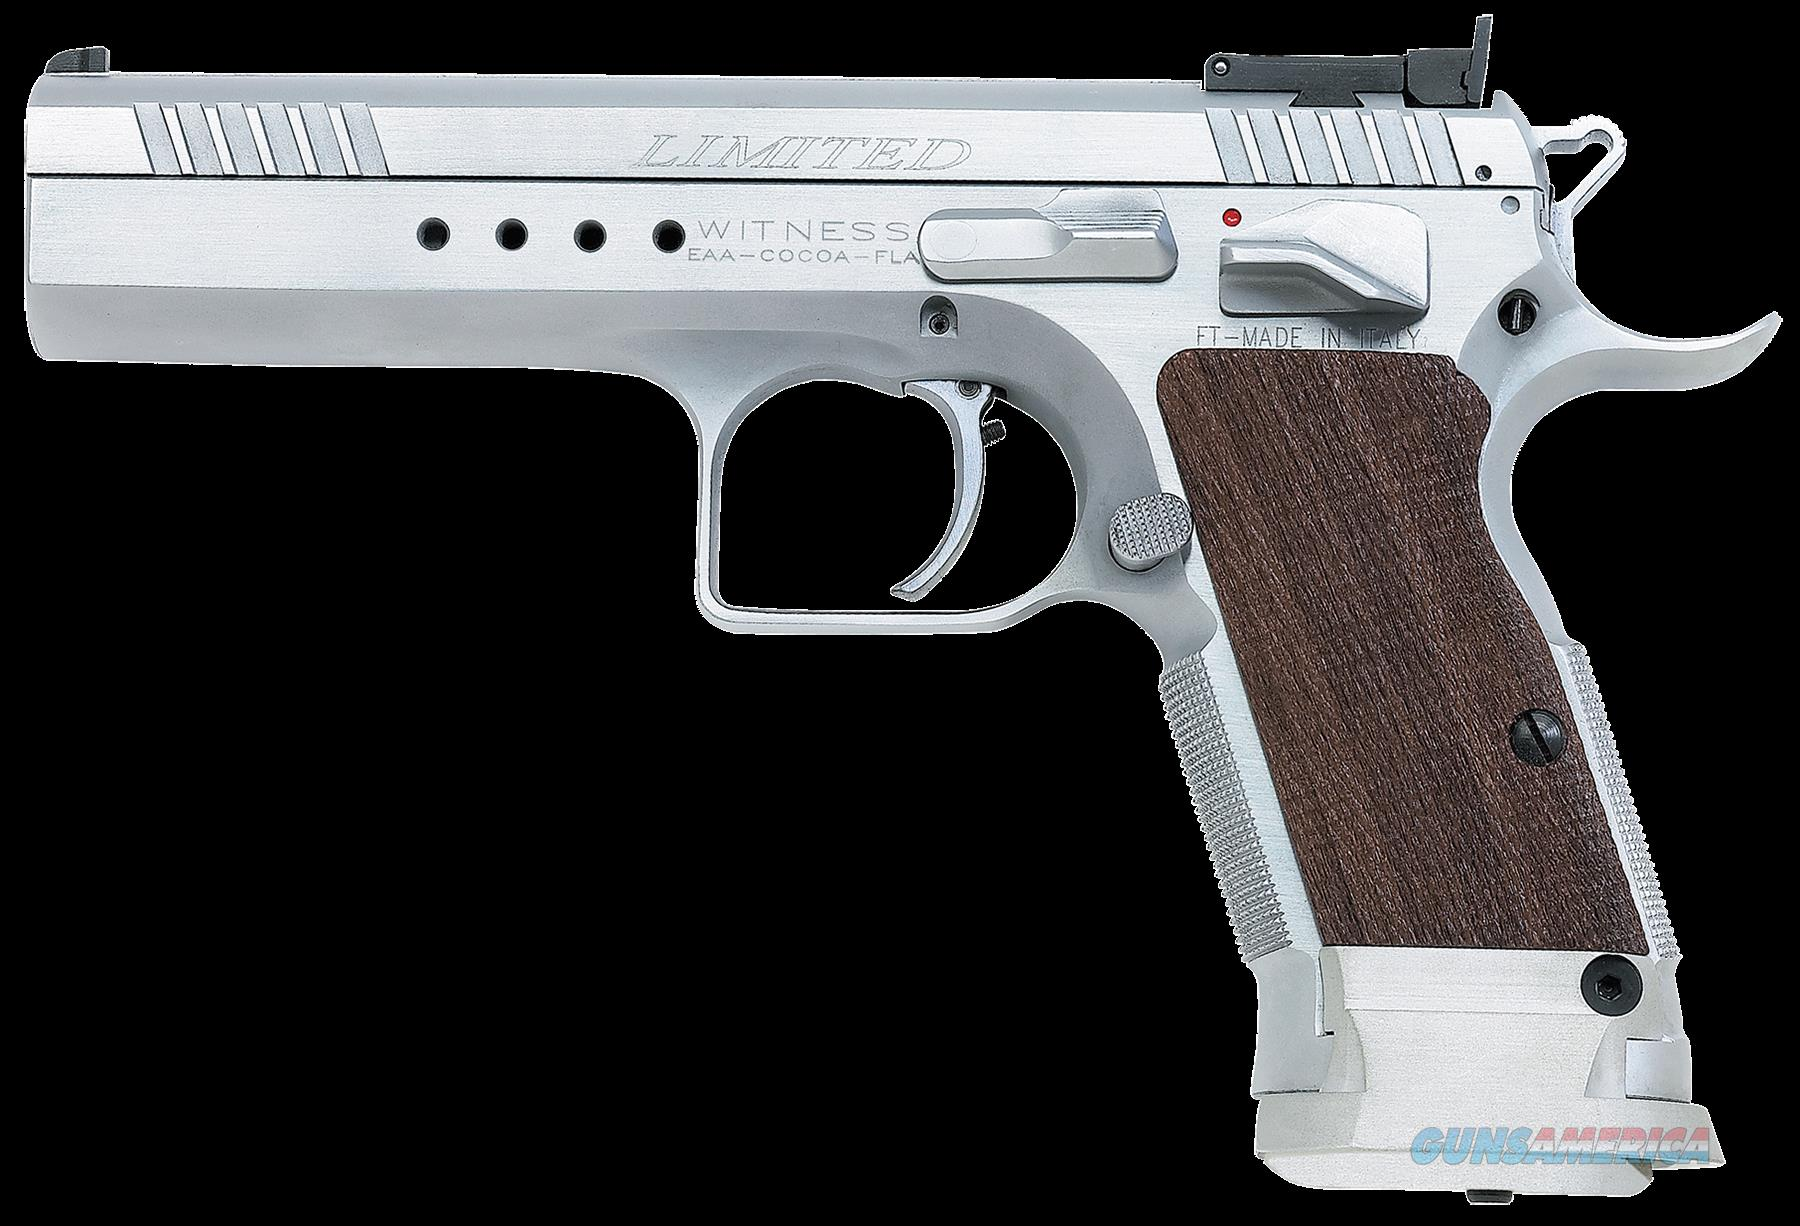 "EAA 600320 Witness Elite Limited 40 S&W 4.75"" 15+1 Wood Grip Chrome Finish  Guns > Pistols > EAA Pistols > Other"